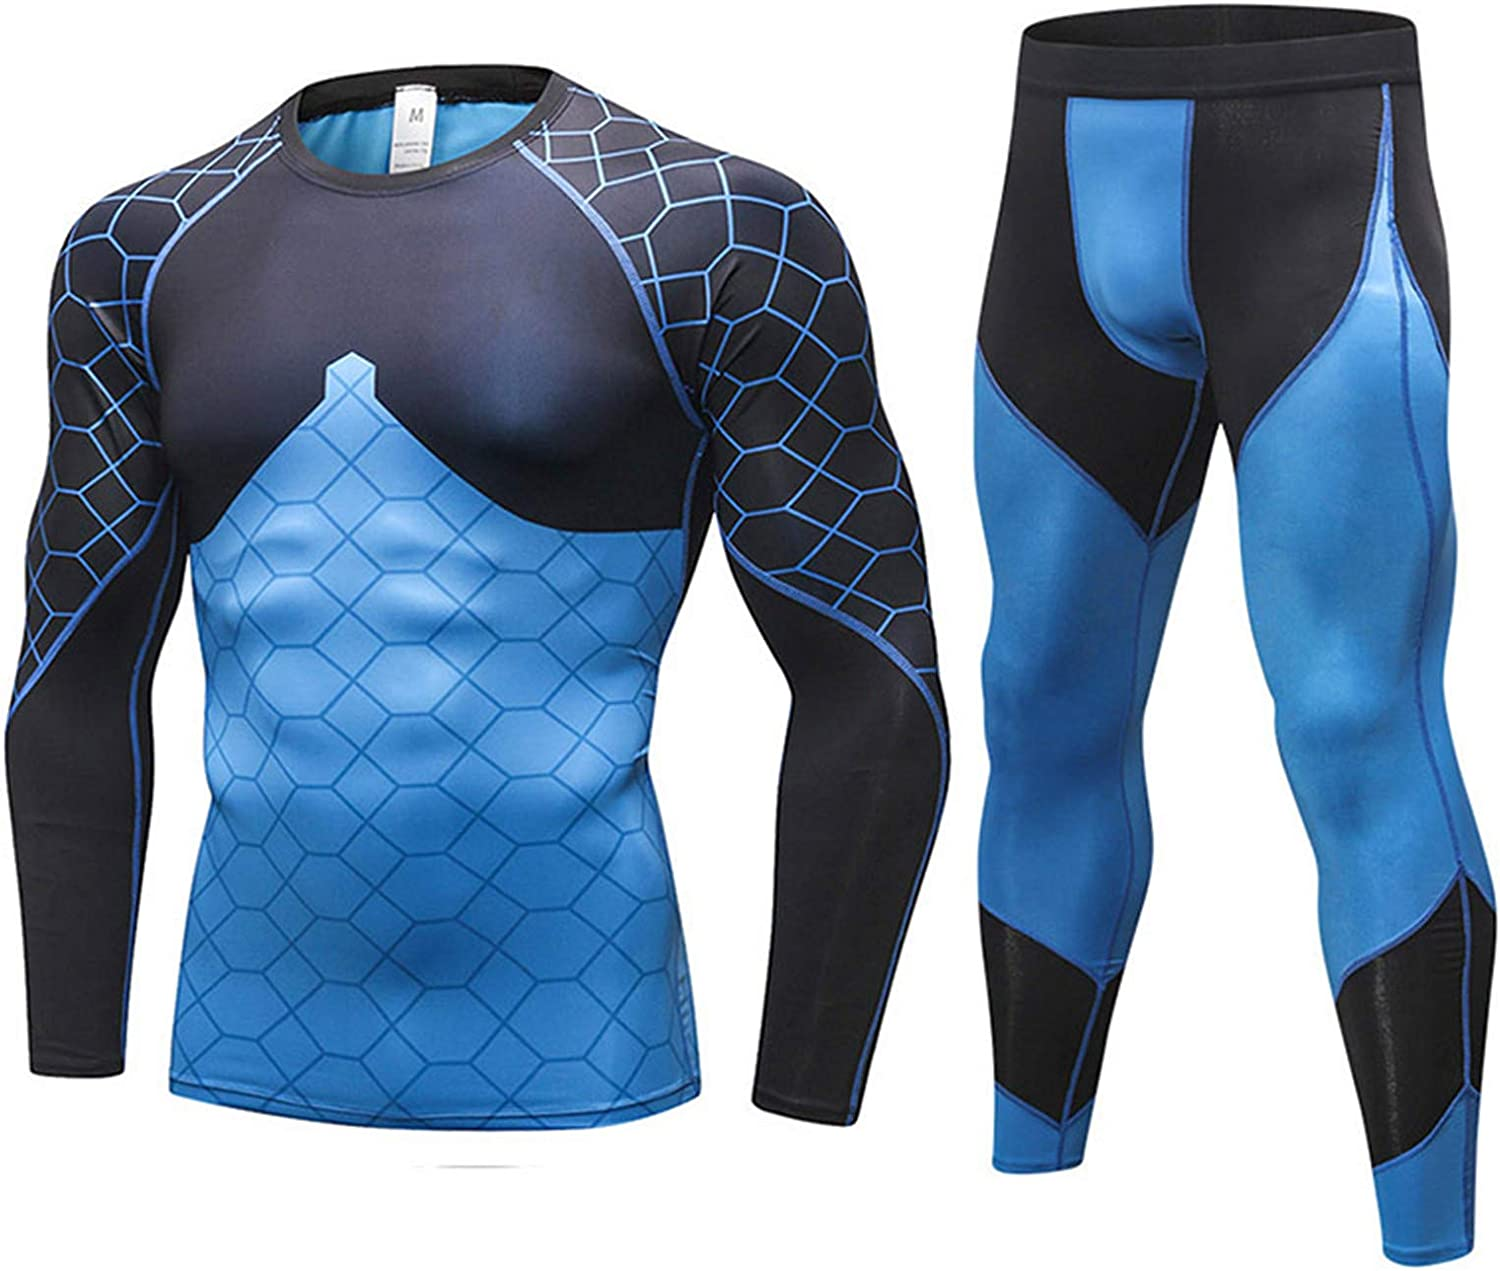 Winter Thermal Underwear Sets Men Long Johns Quick Dry Stretch Men's Warm Fitness